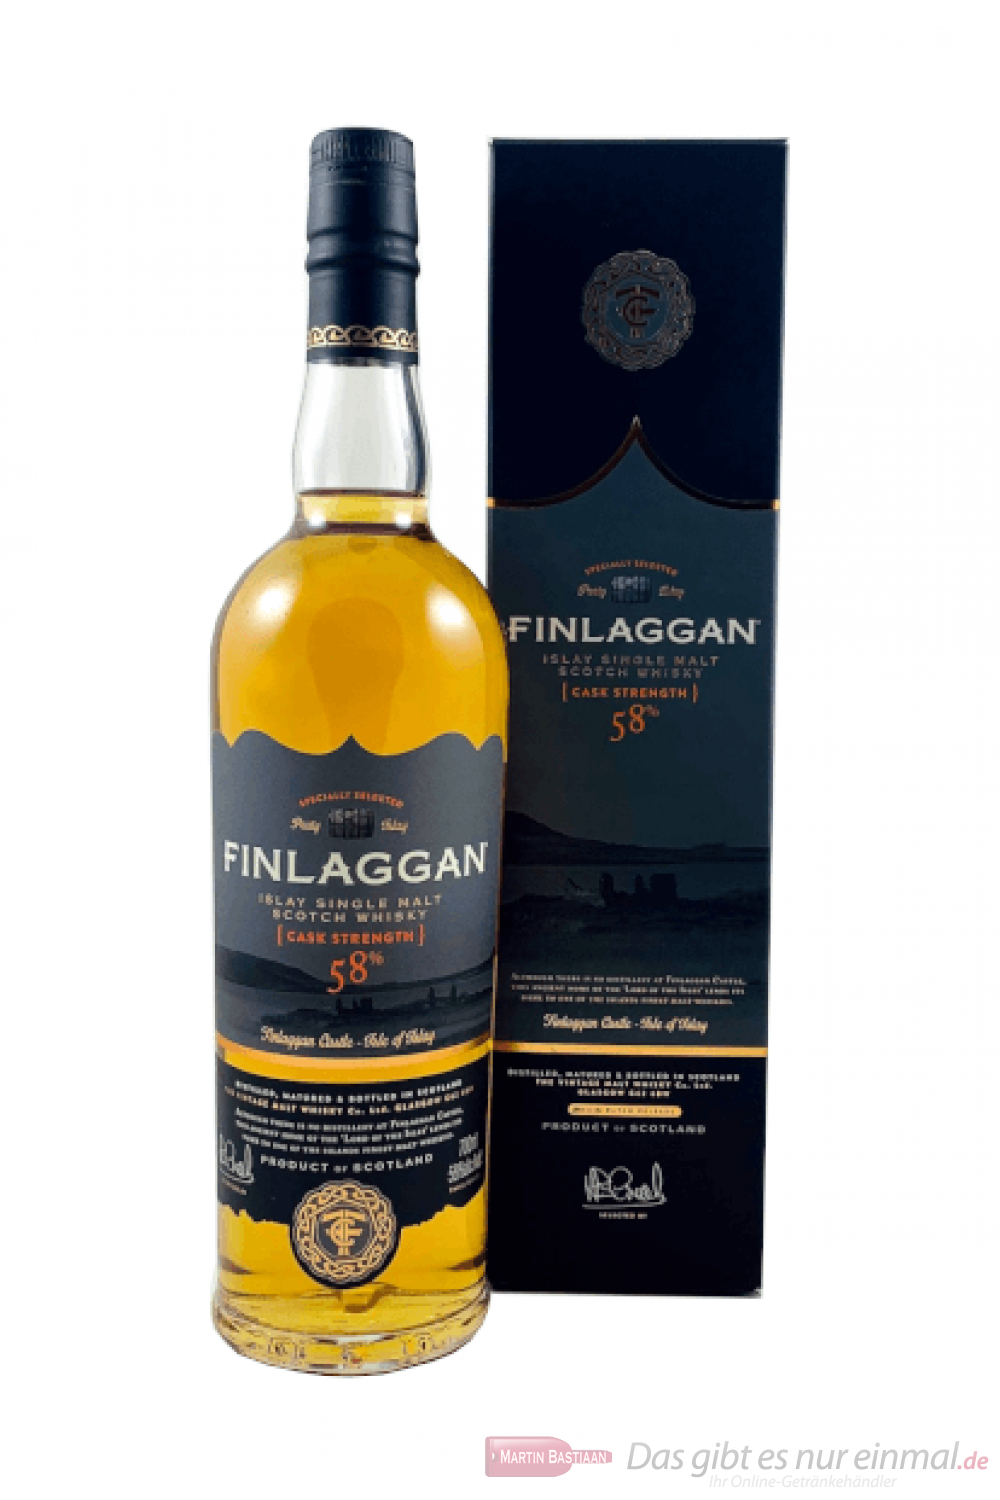 Finlaggan Cask Strength Single Malt Scotch Whisky 0,7l